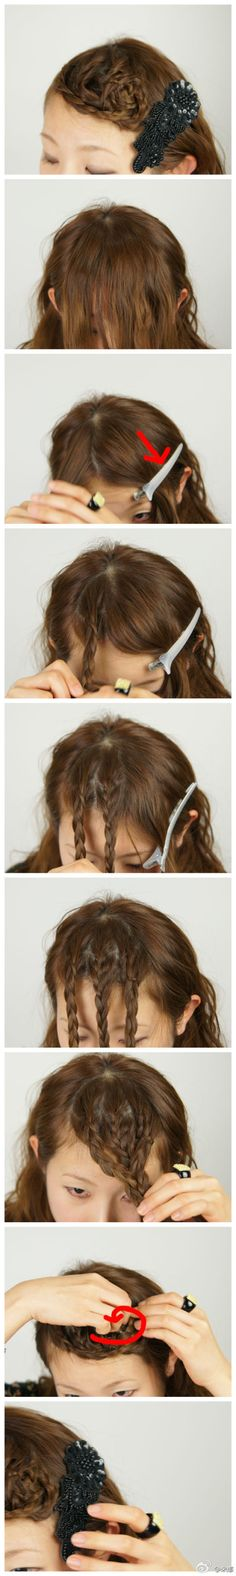 i could do this fancy hairstyles braided hairstyles bad hair day braid